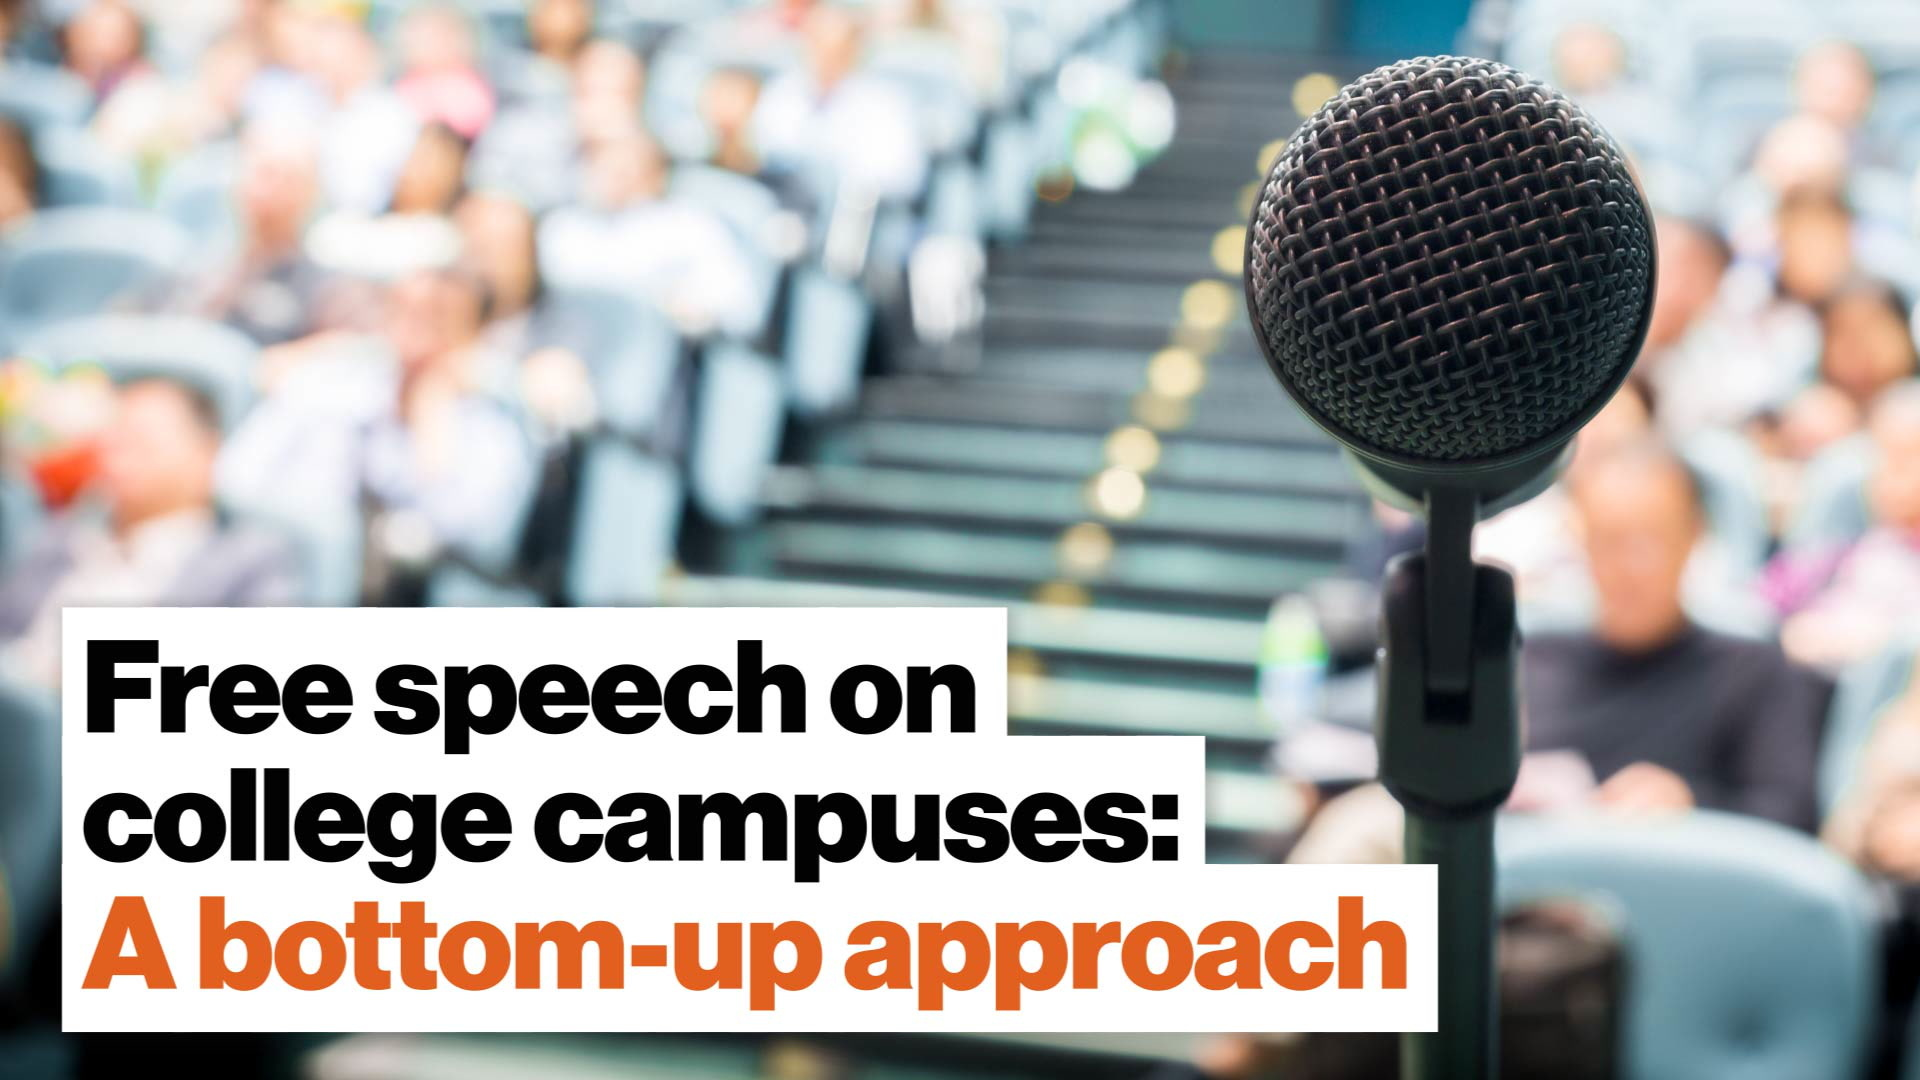 Free speech on college campuses: A bottom-up approach is best